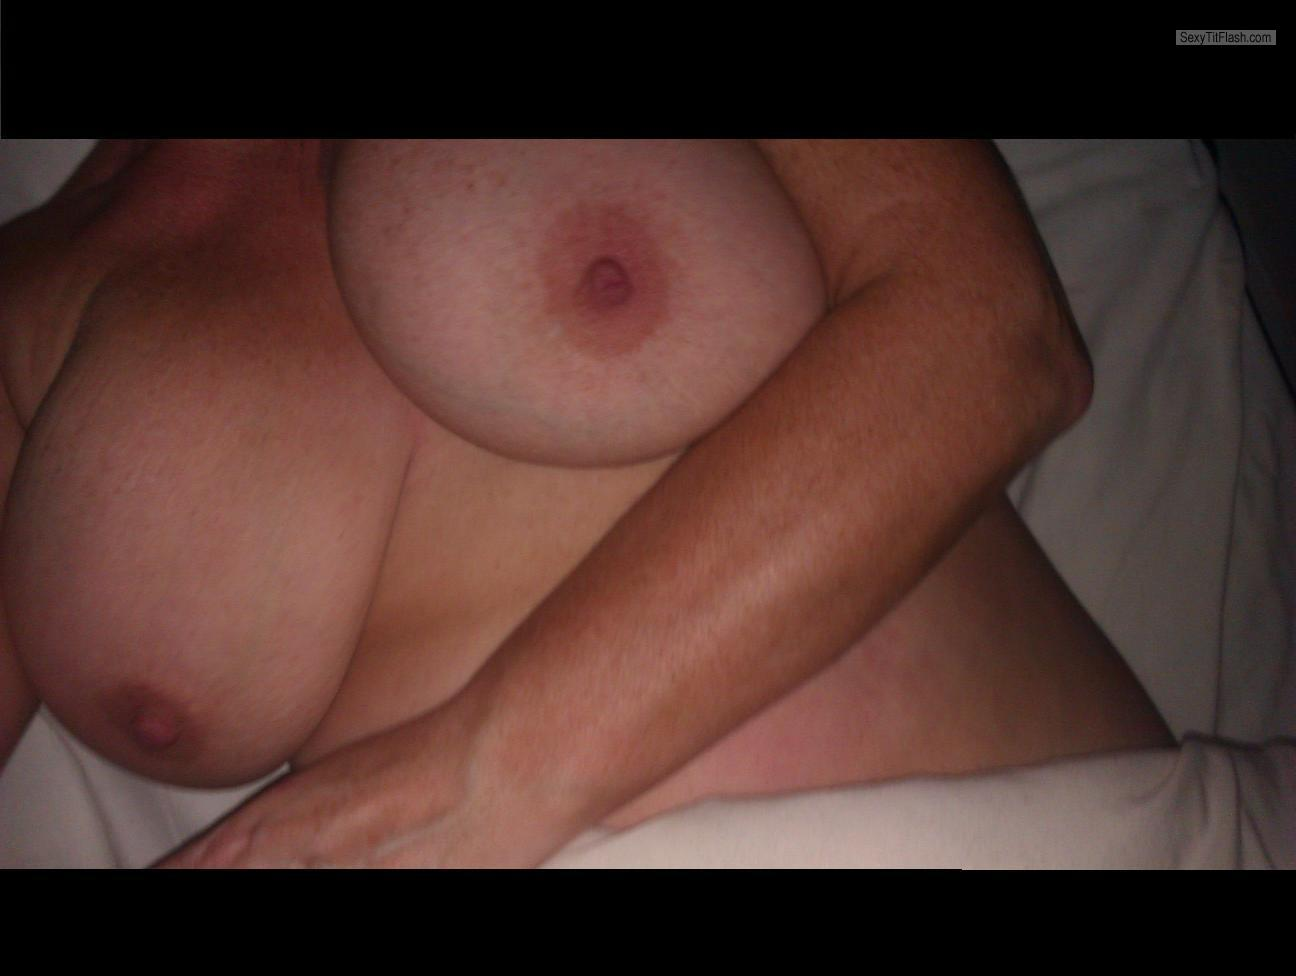 Tit Flash: Wife's Big Tits - Carol from United Kingdom